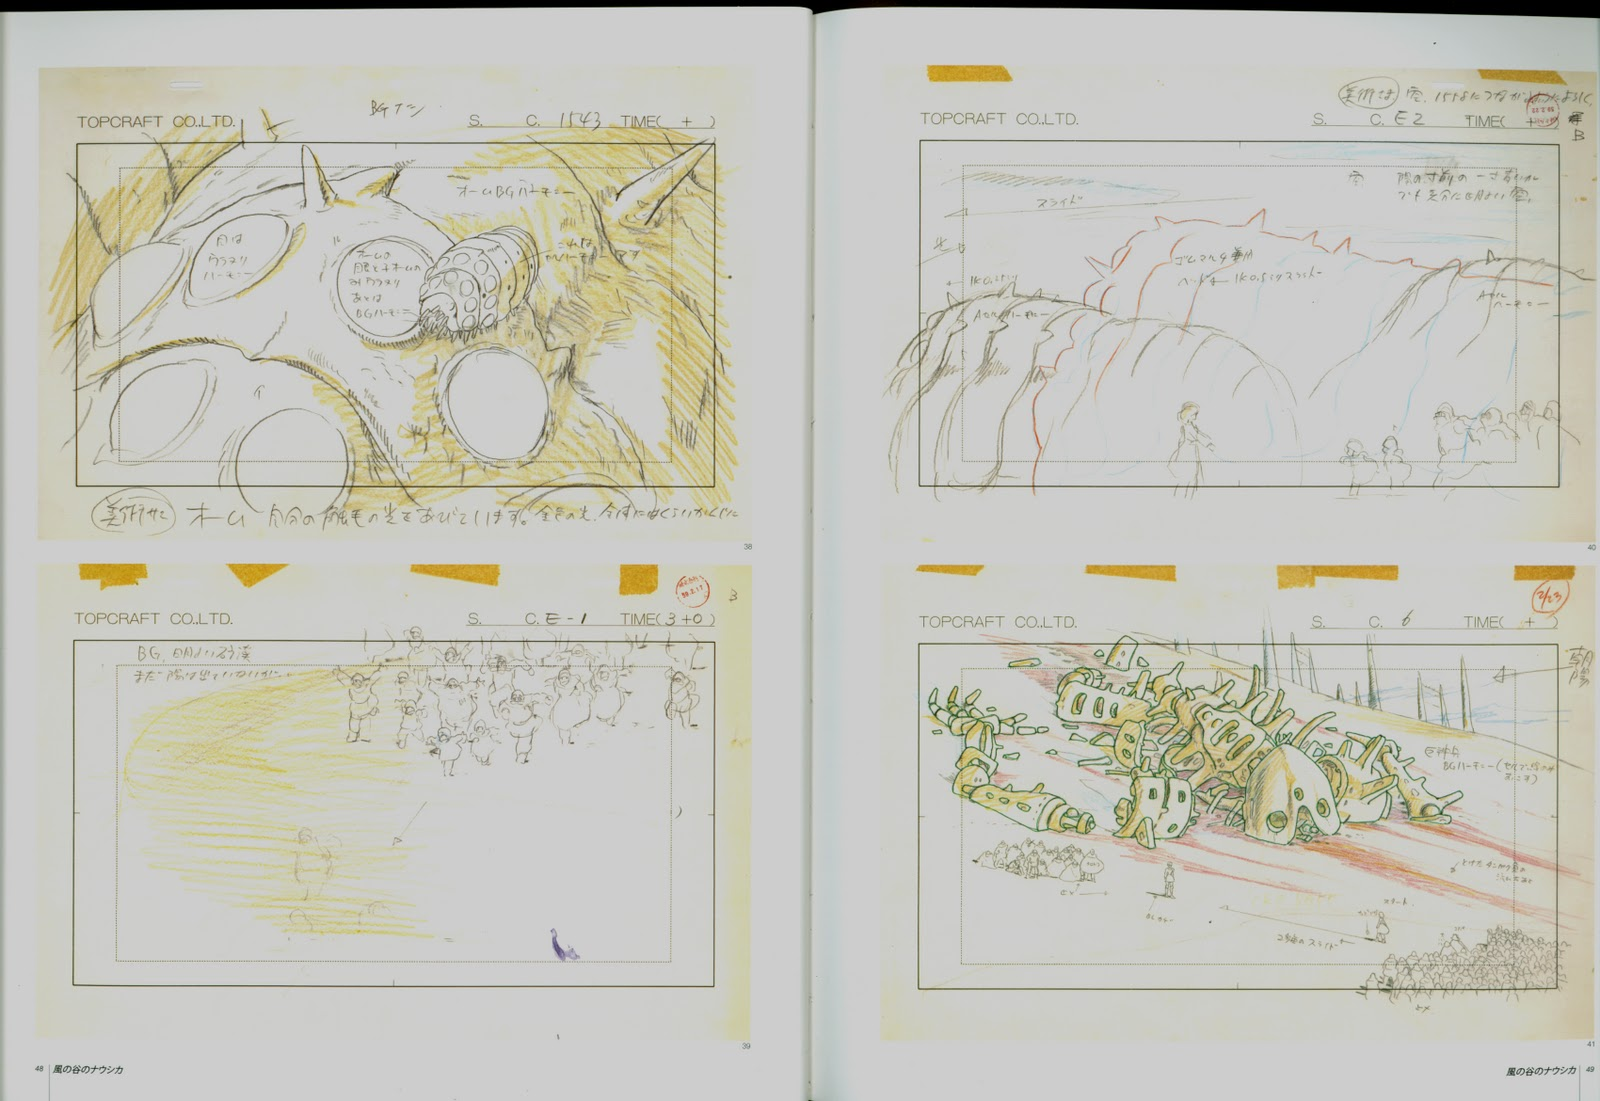 nausicaa_of_the_valley_of_the_wind_concept_art_storyboard_08.jpg